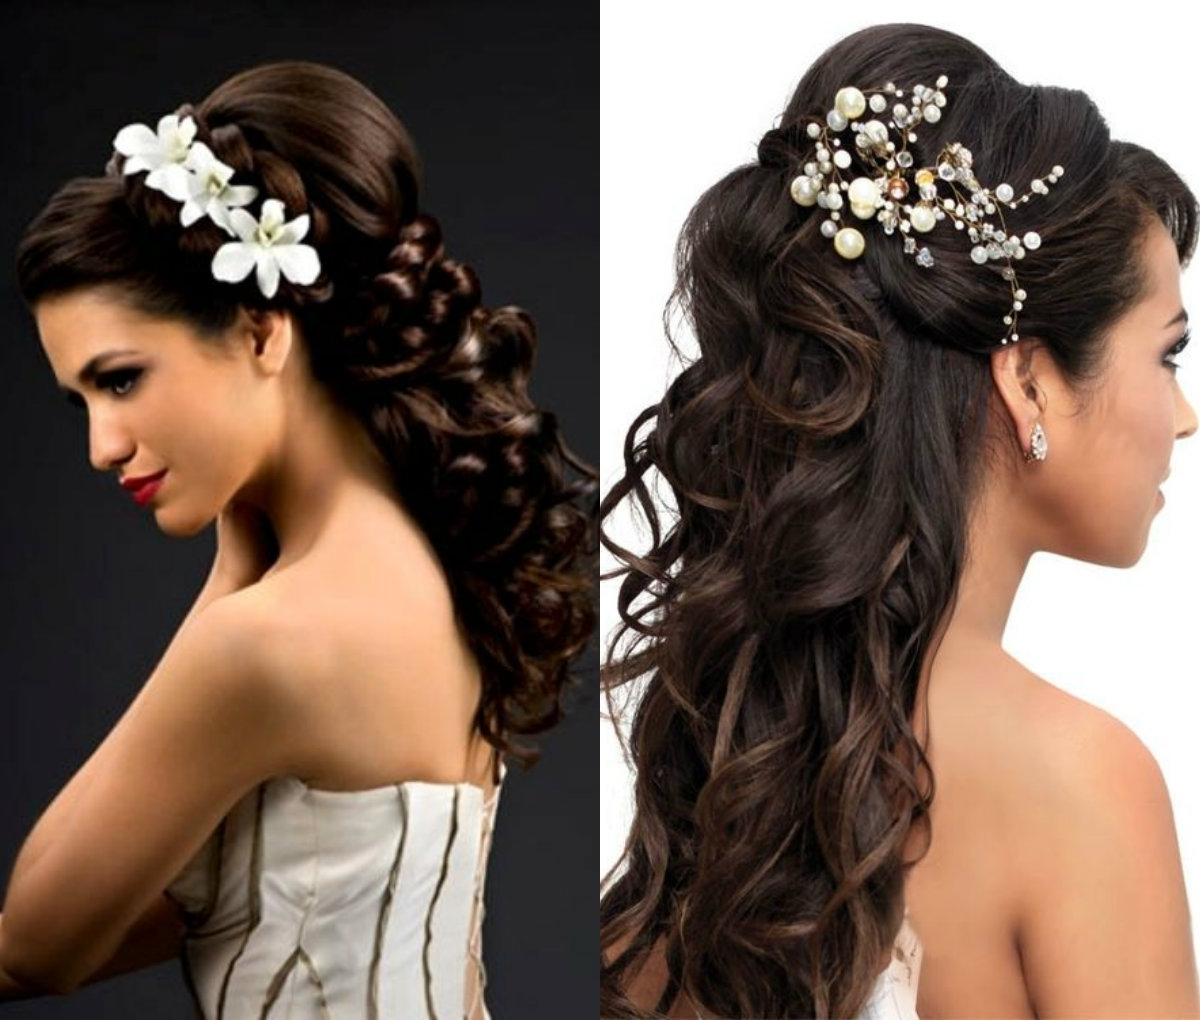 Hairstyles Half Up And Down For Wedding Ideas Mediumth Hair Guest Intended For Latest Wedding Guest Hairstyles For Long Hair With Fascinator (View 8 of 15)